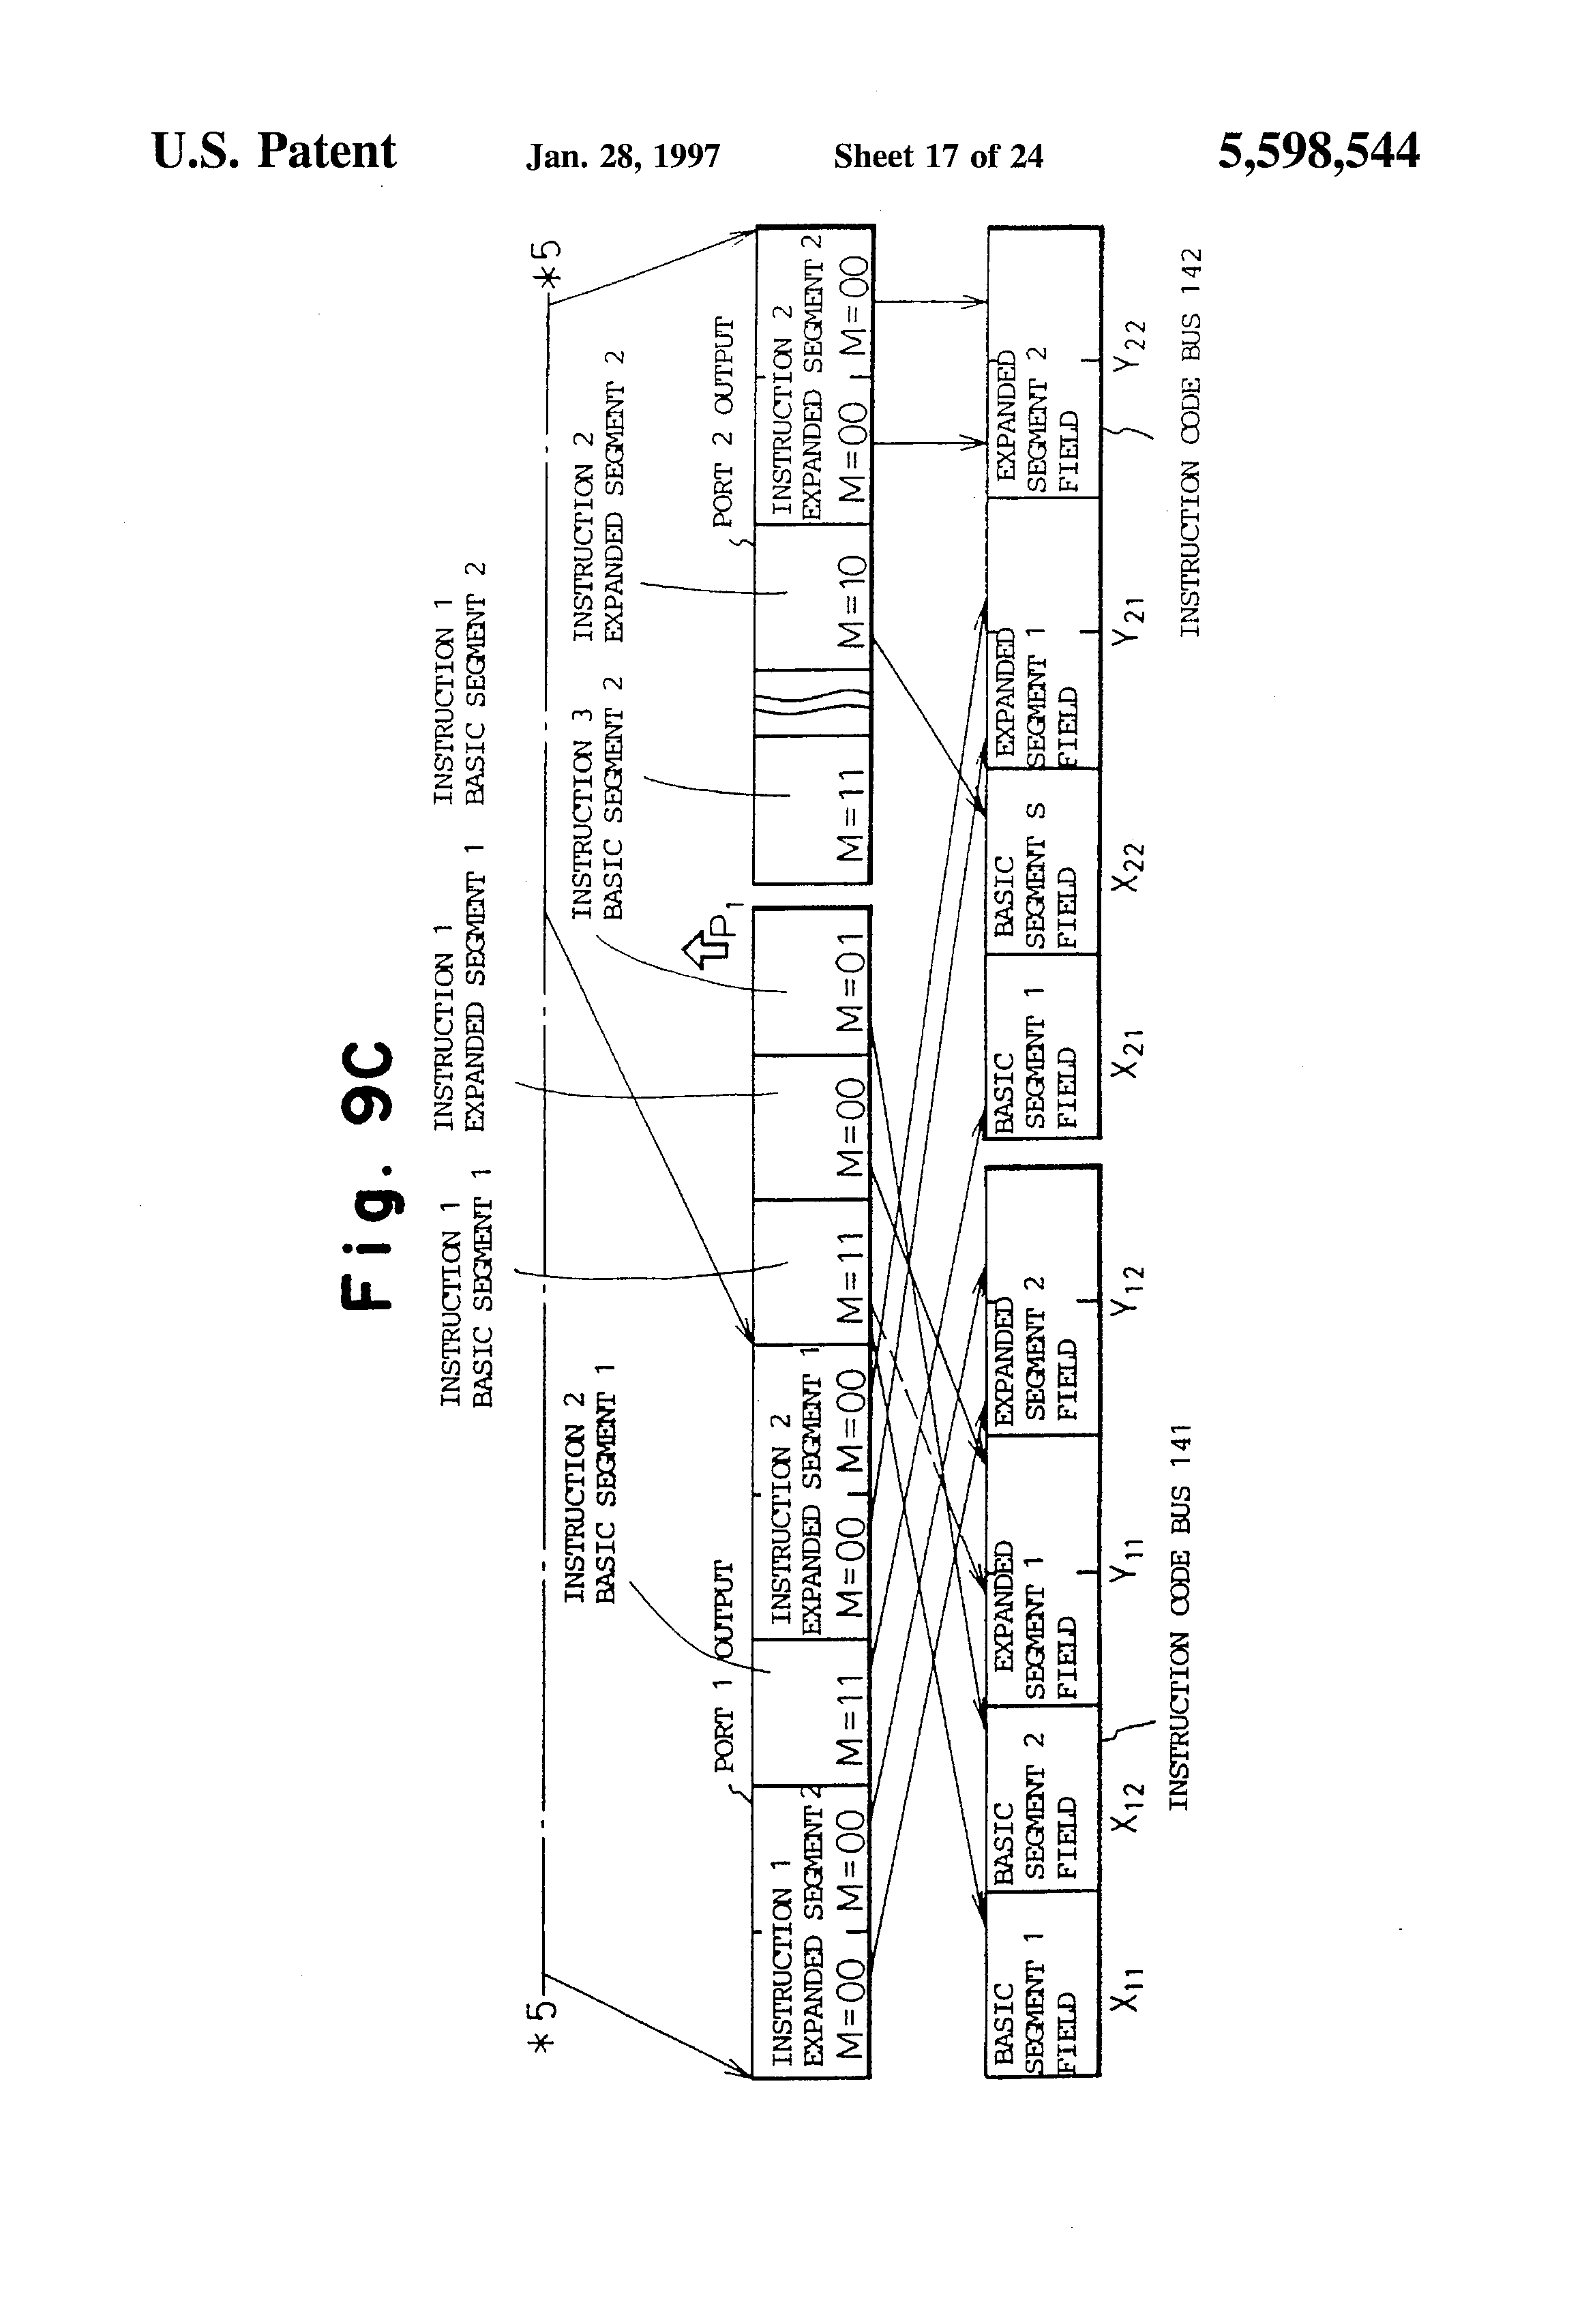 instruction buffer device for processing an instruction set of